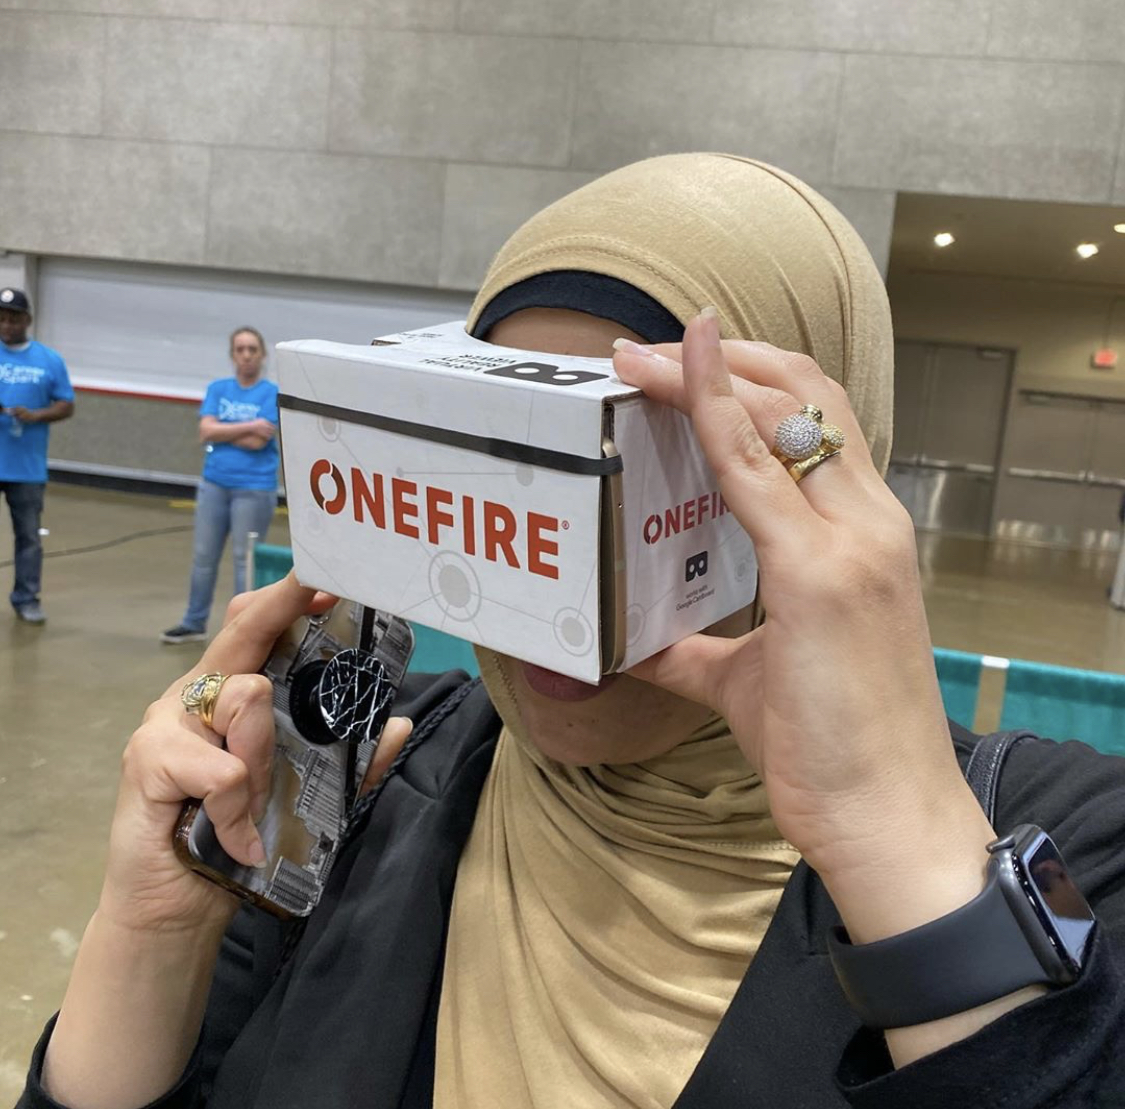 ONEFIRE VR Viewer